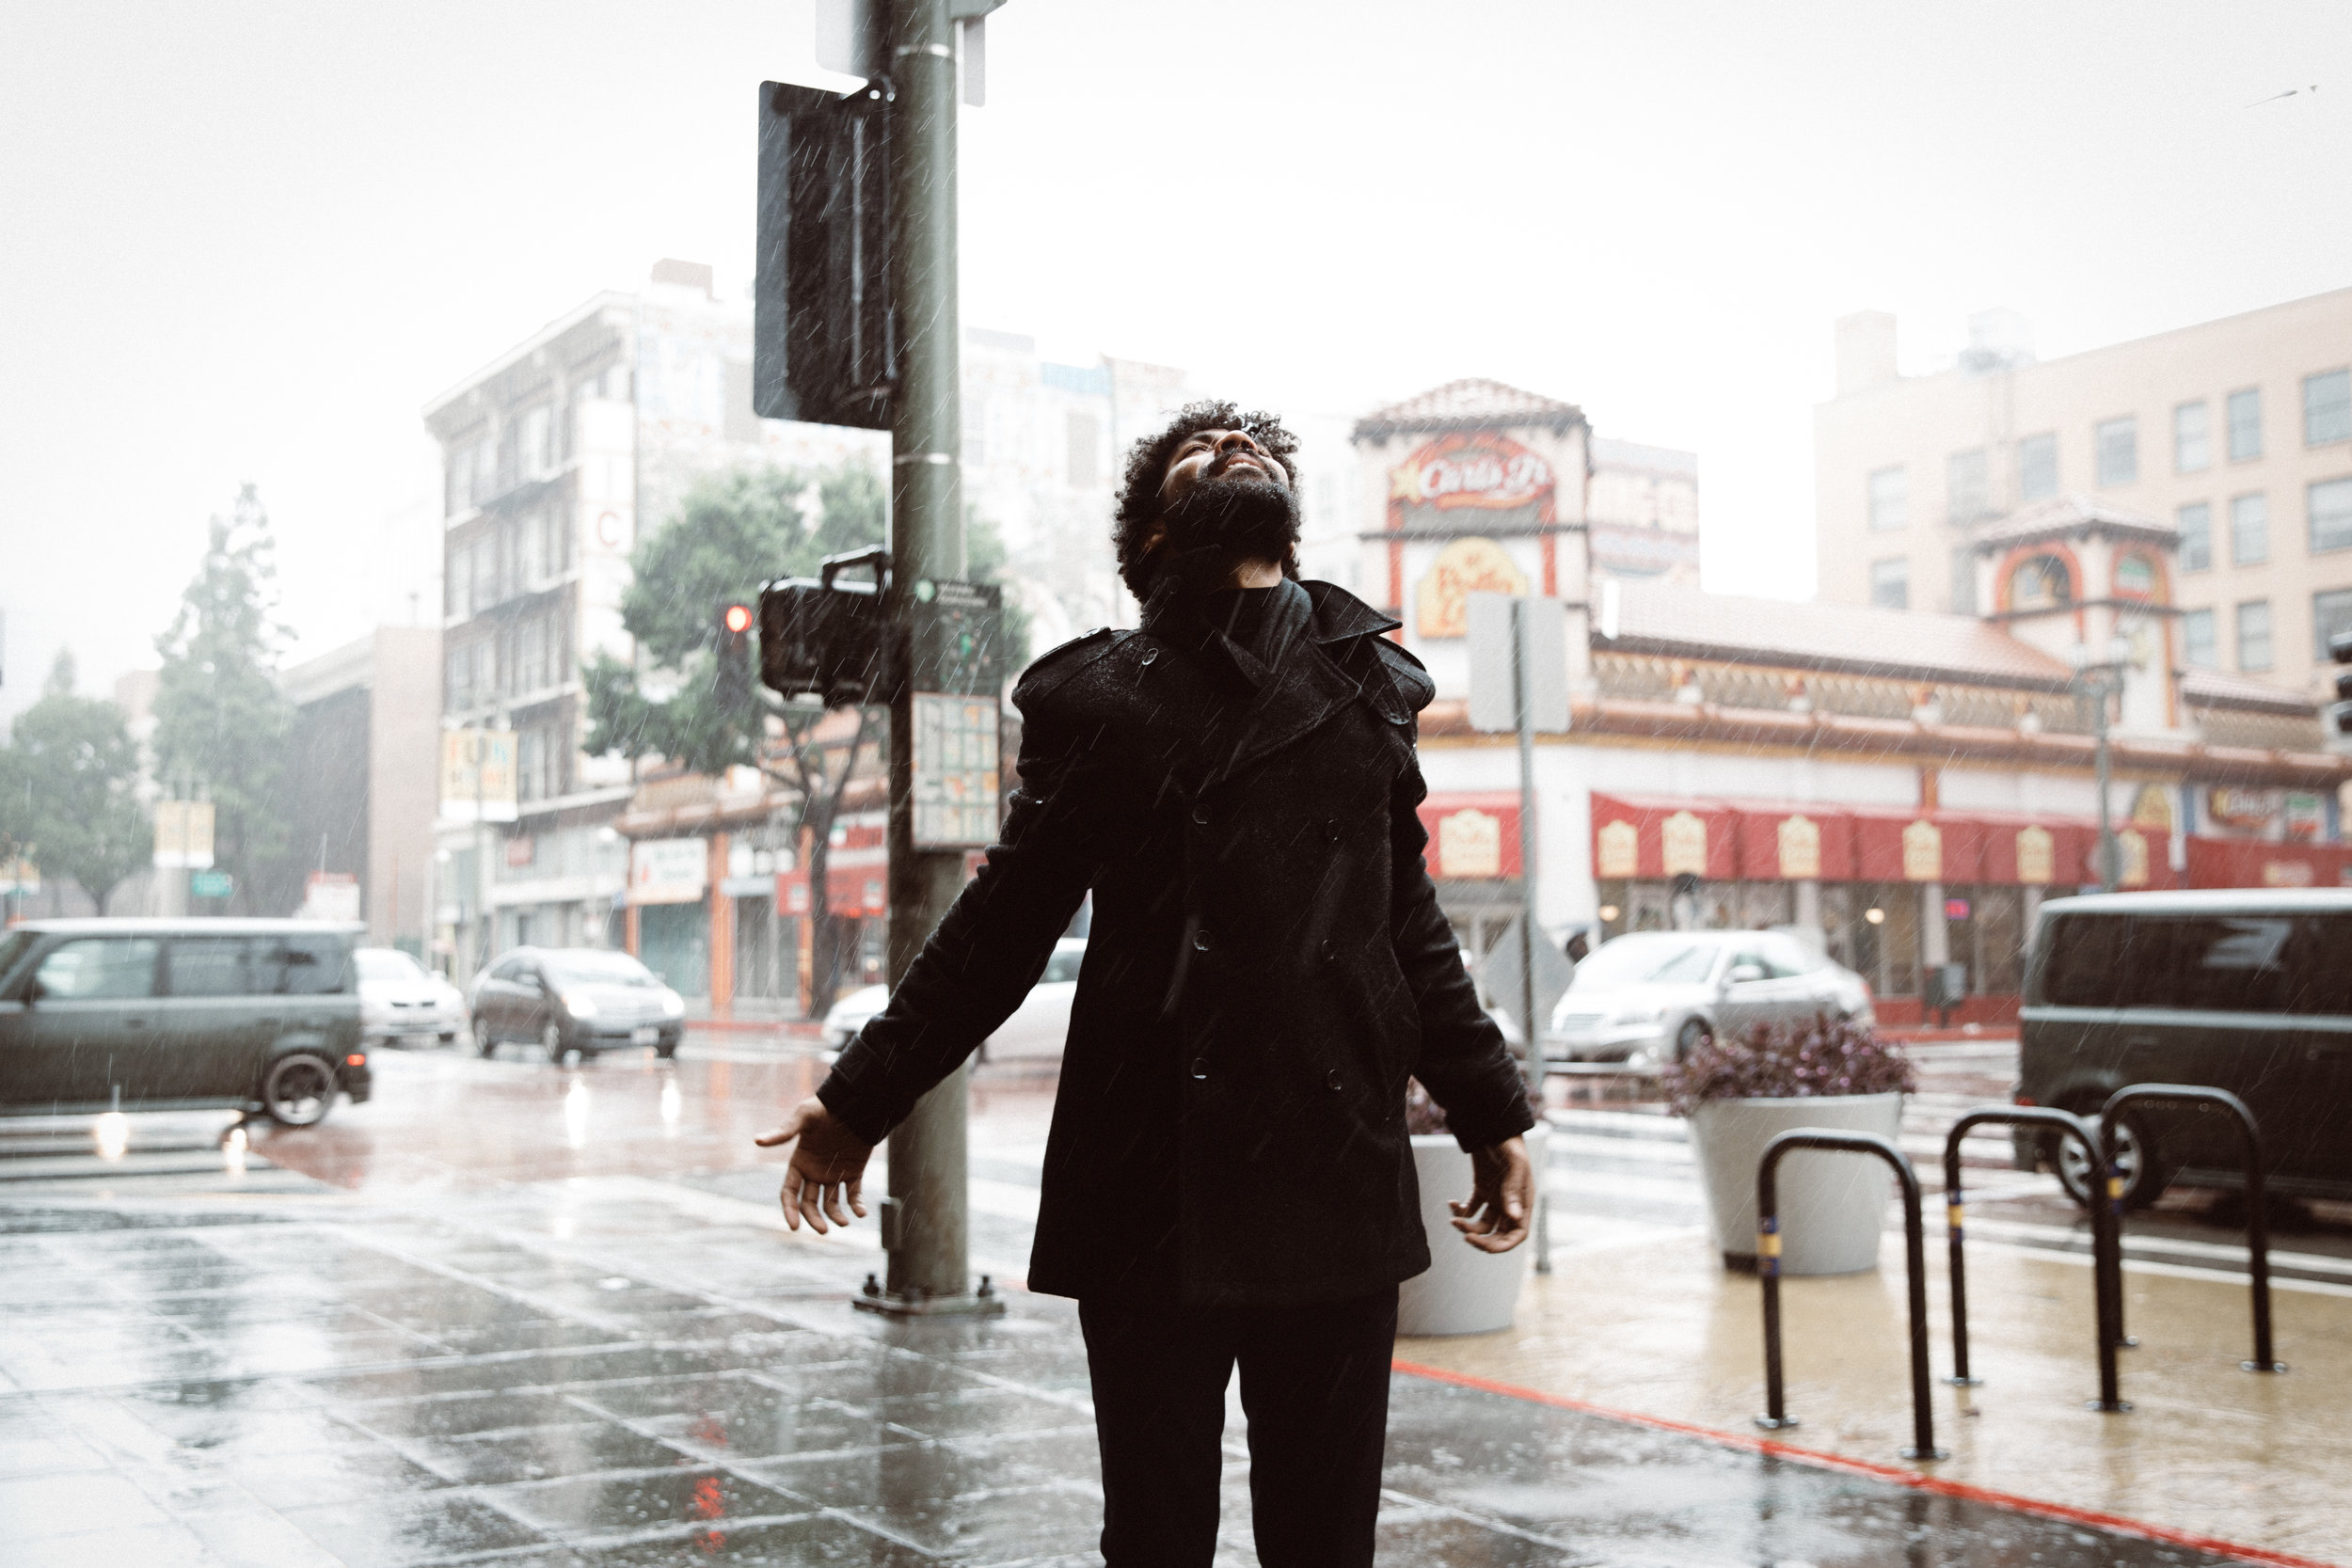 Adam_Rainy_Day_Shoot-5.jpg